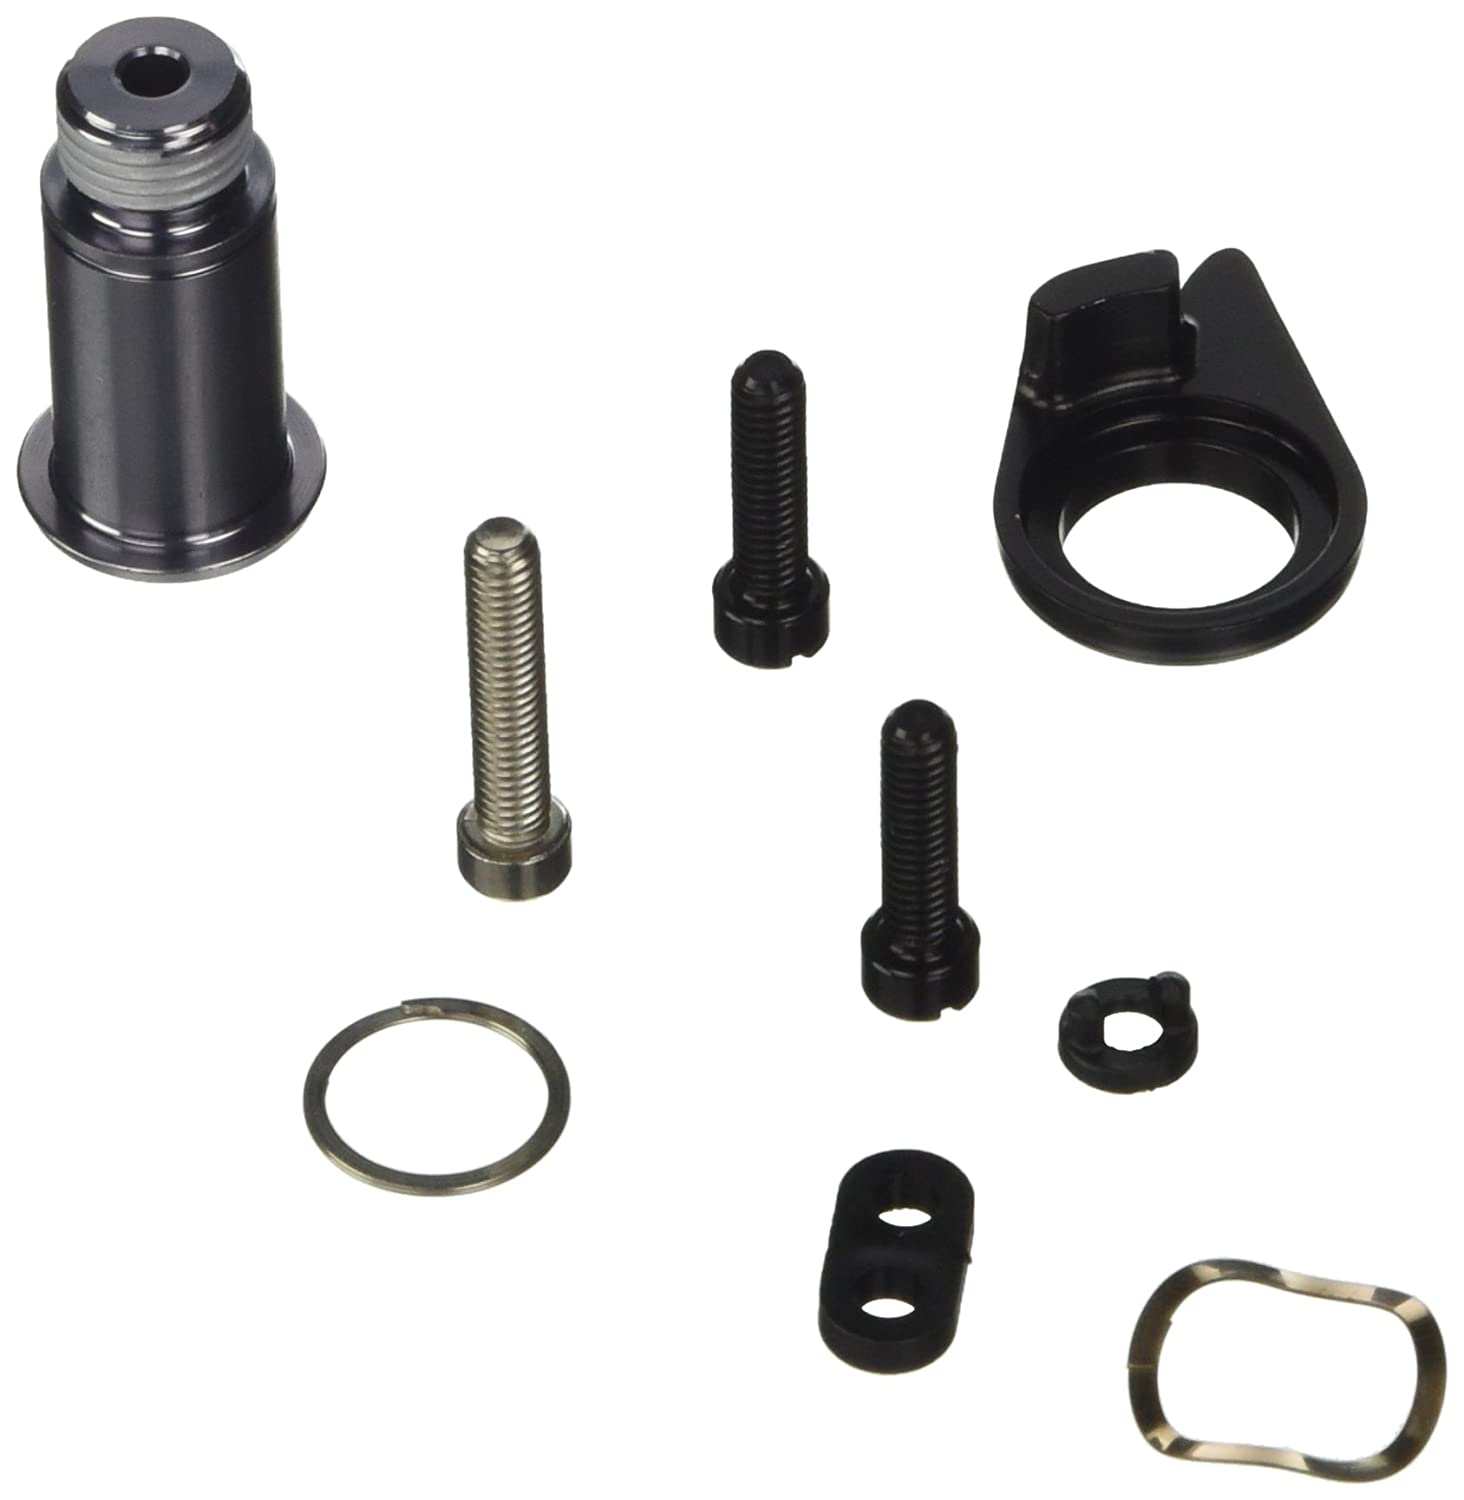 SRAM XX1 Rear Derailleur Upper (B) Bolt and Limit Screws parts Kit RDPSXX1002